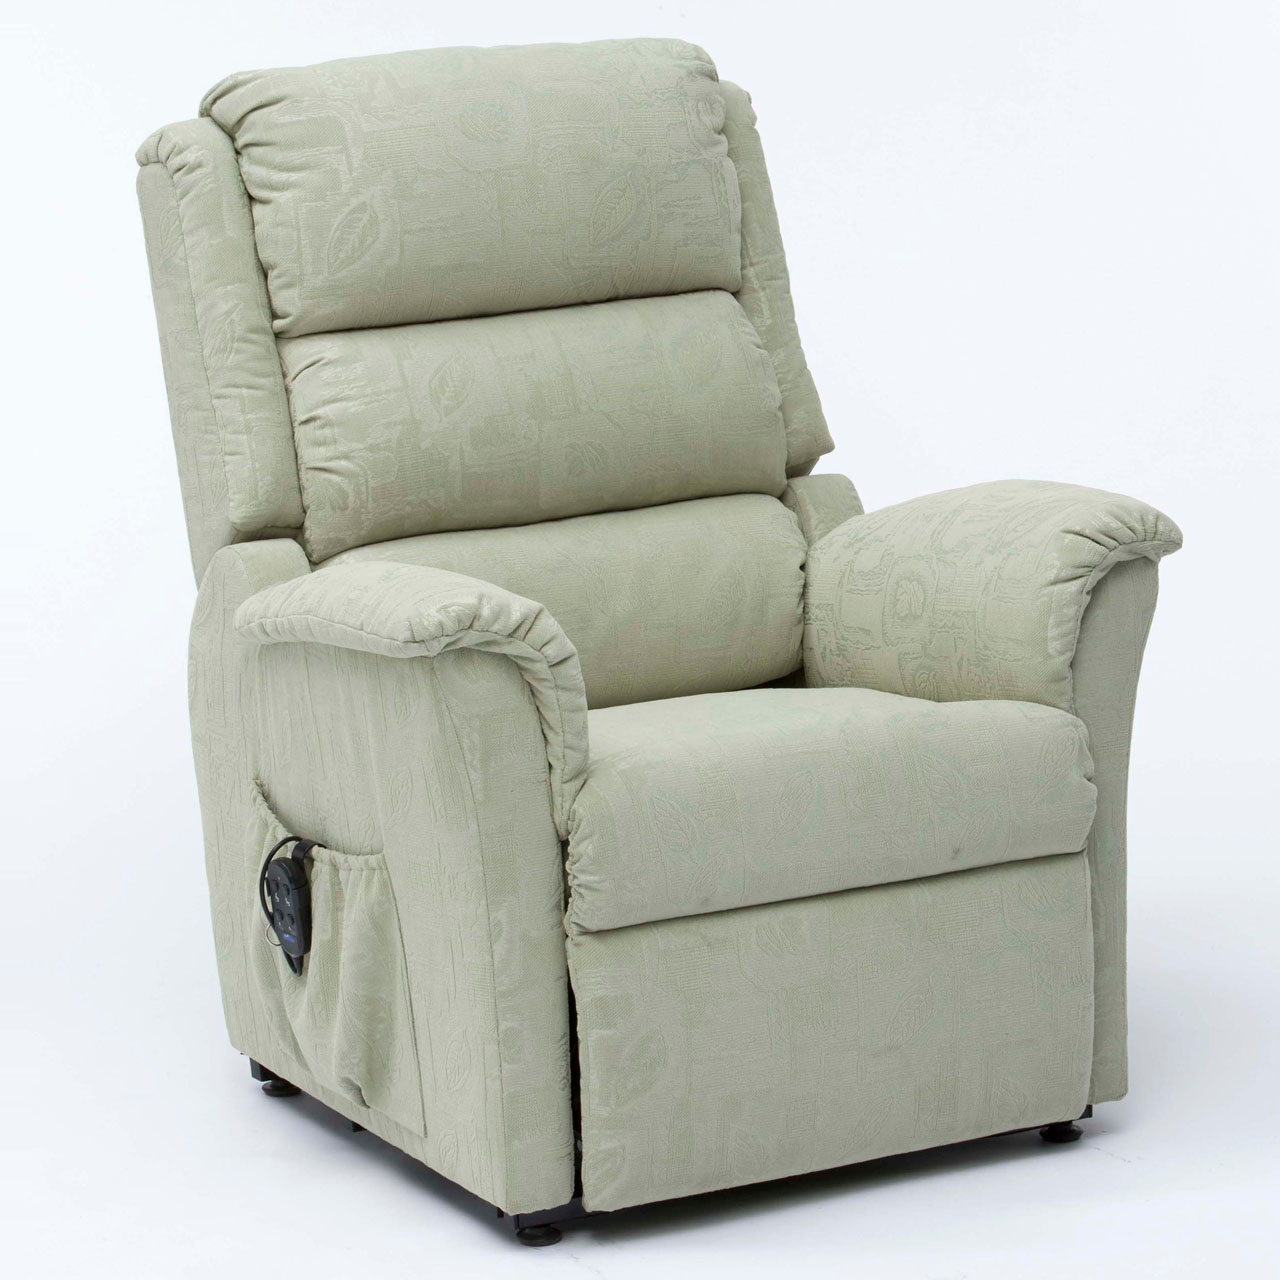 Nevada Recliner Chair